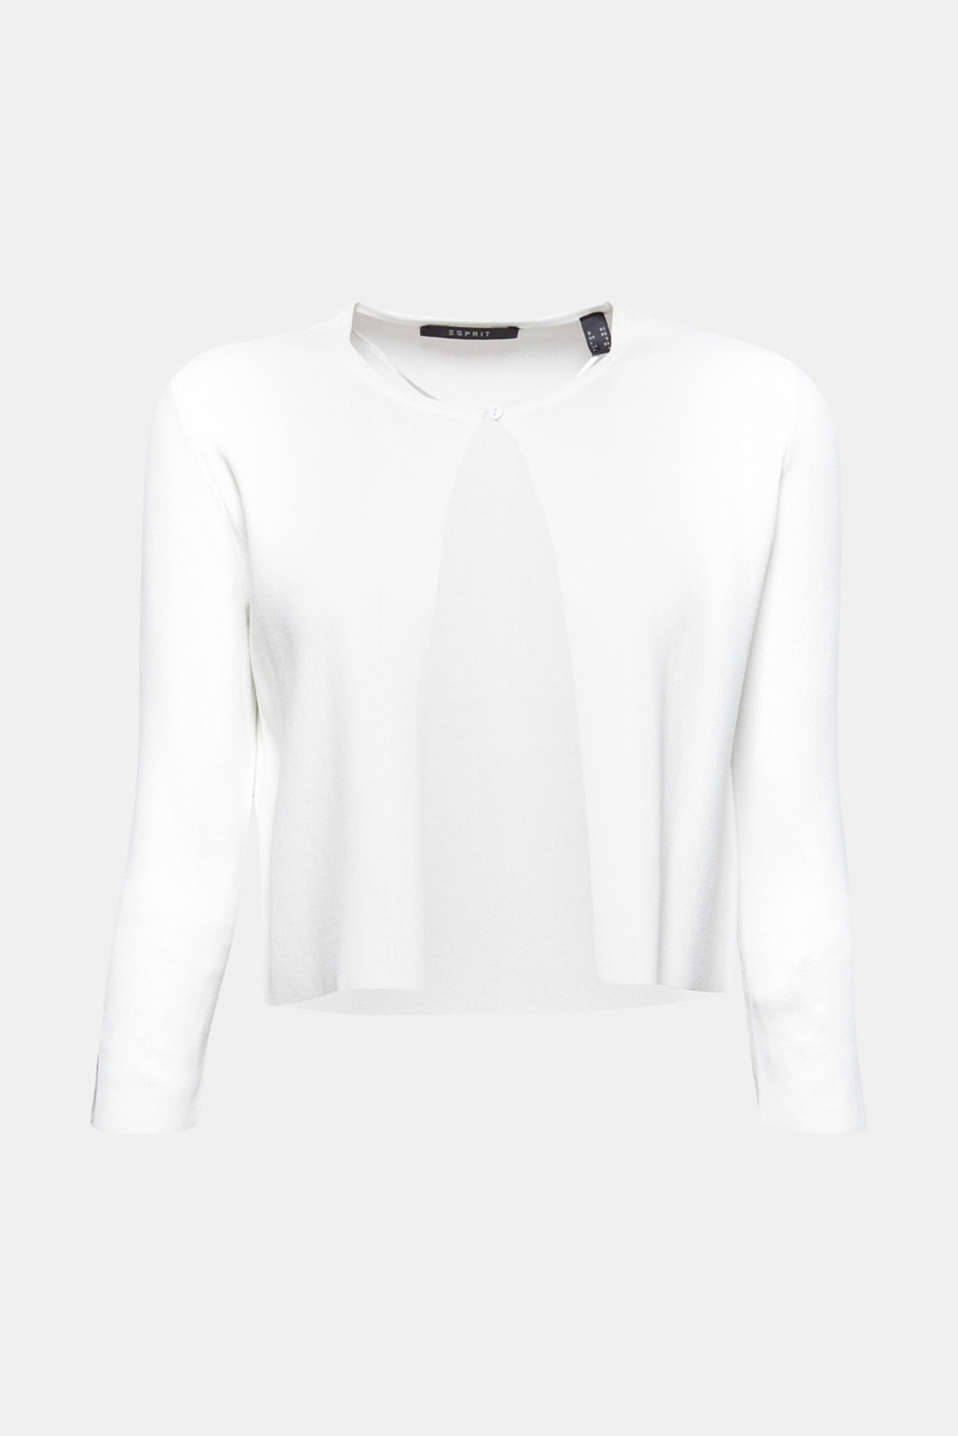 This straight cut, fine knit bolero with sleeve vents is chic and extremely versatile for creating outfits.